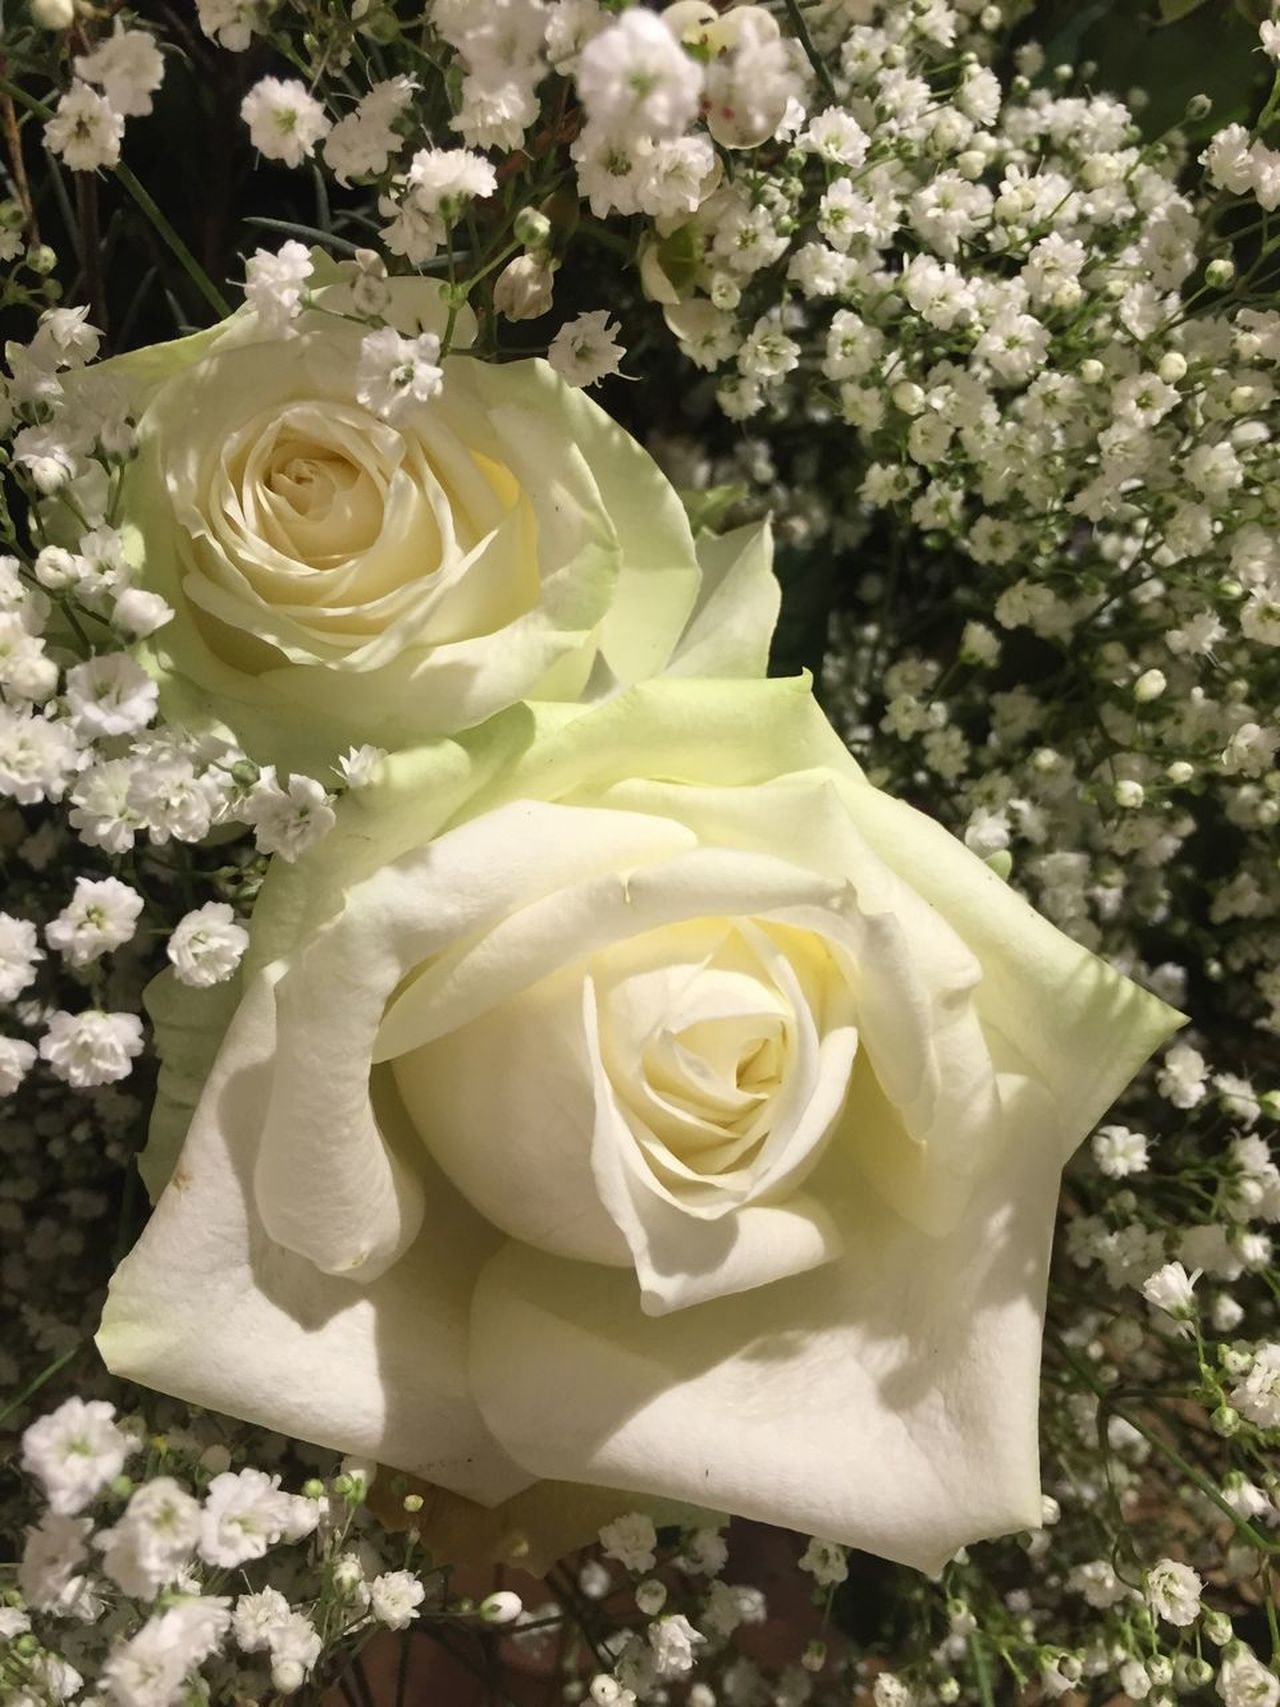 White roses flower decoration Flower Rose - Flower Fragility Bouquet Nature White Color Beauty In Nature Petal Love Flower Arrangement Freshness Flower Head No People Close-up Summer Indoors  Day Gift Valentine's Day  Mothers Day